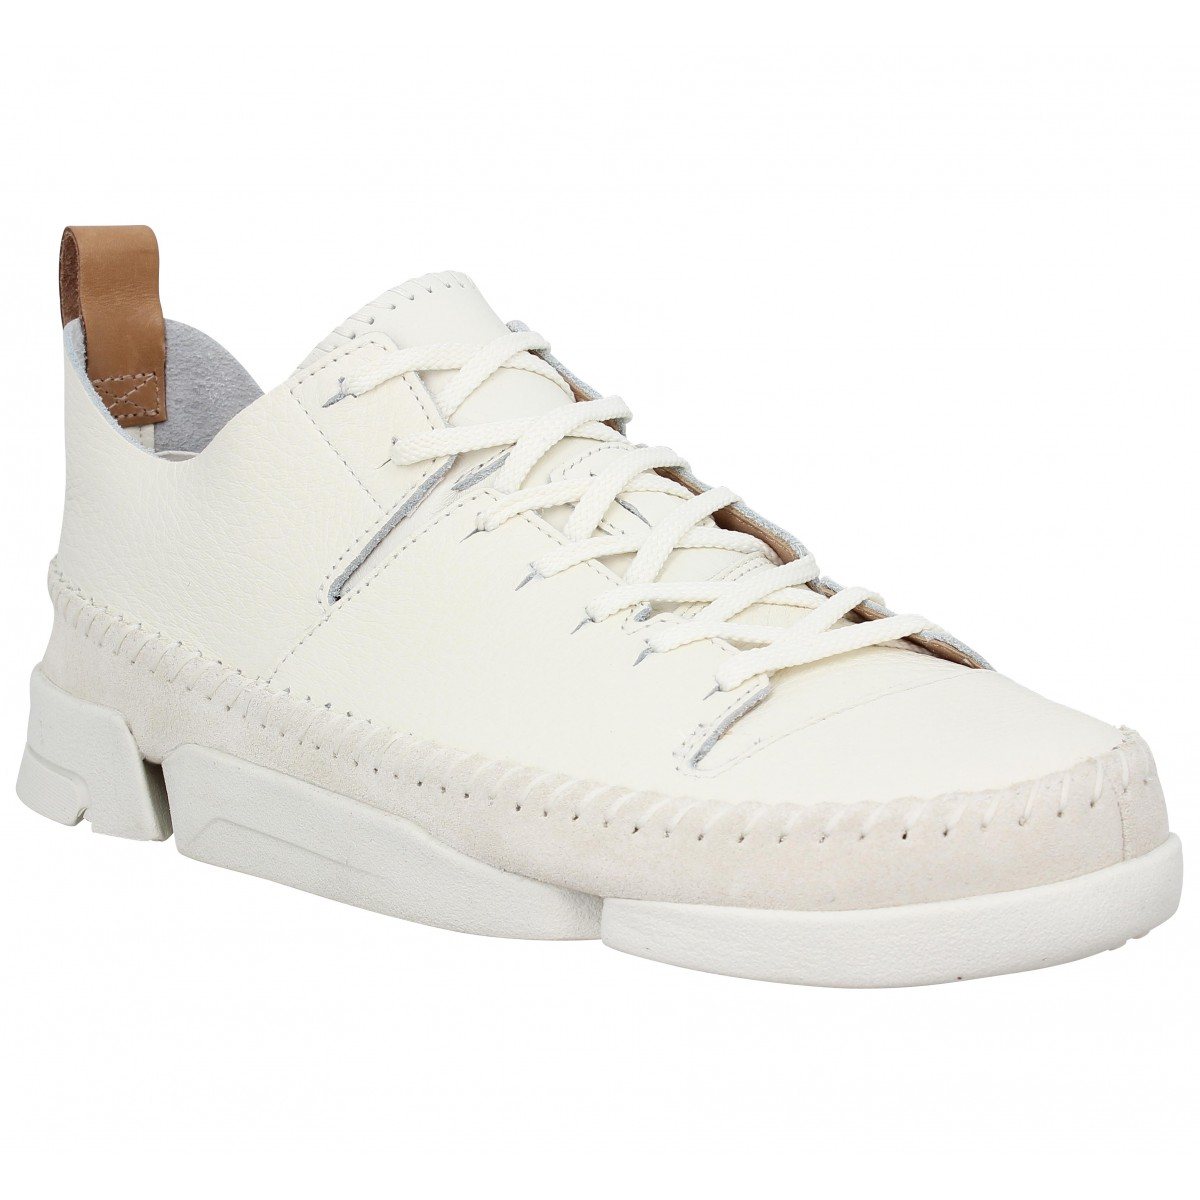 Clarks Originals TRIGENIC FLEX - Chaussures à lacets blanc 901sRtBro4